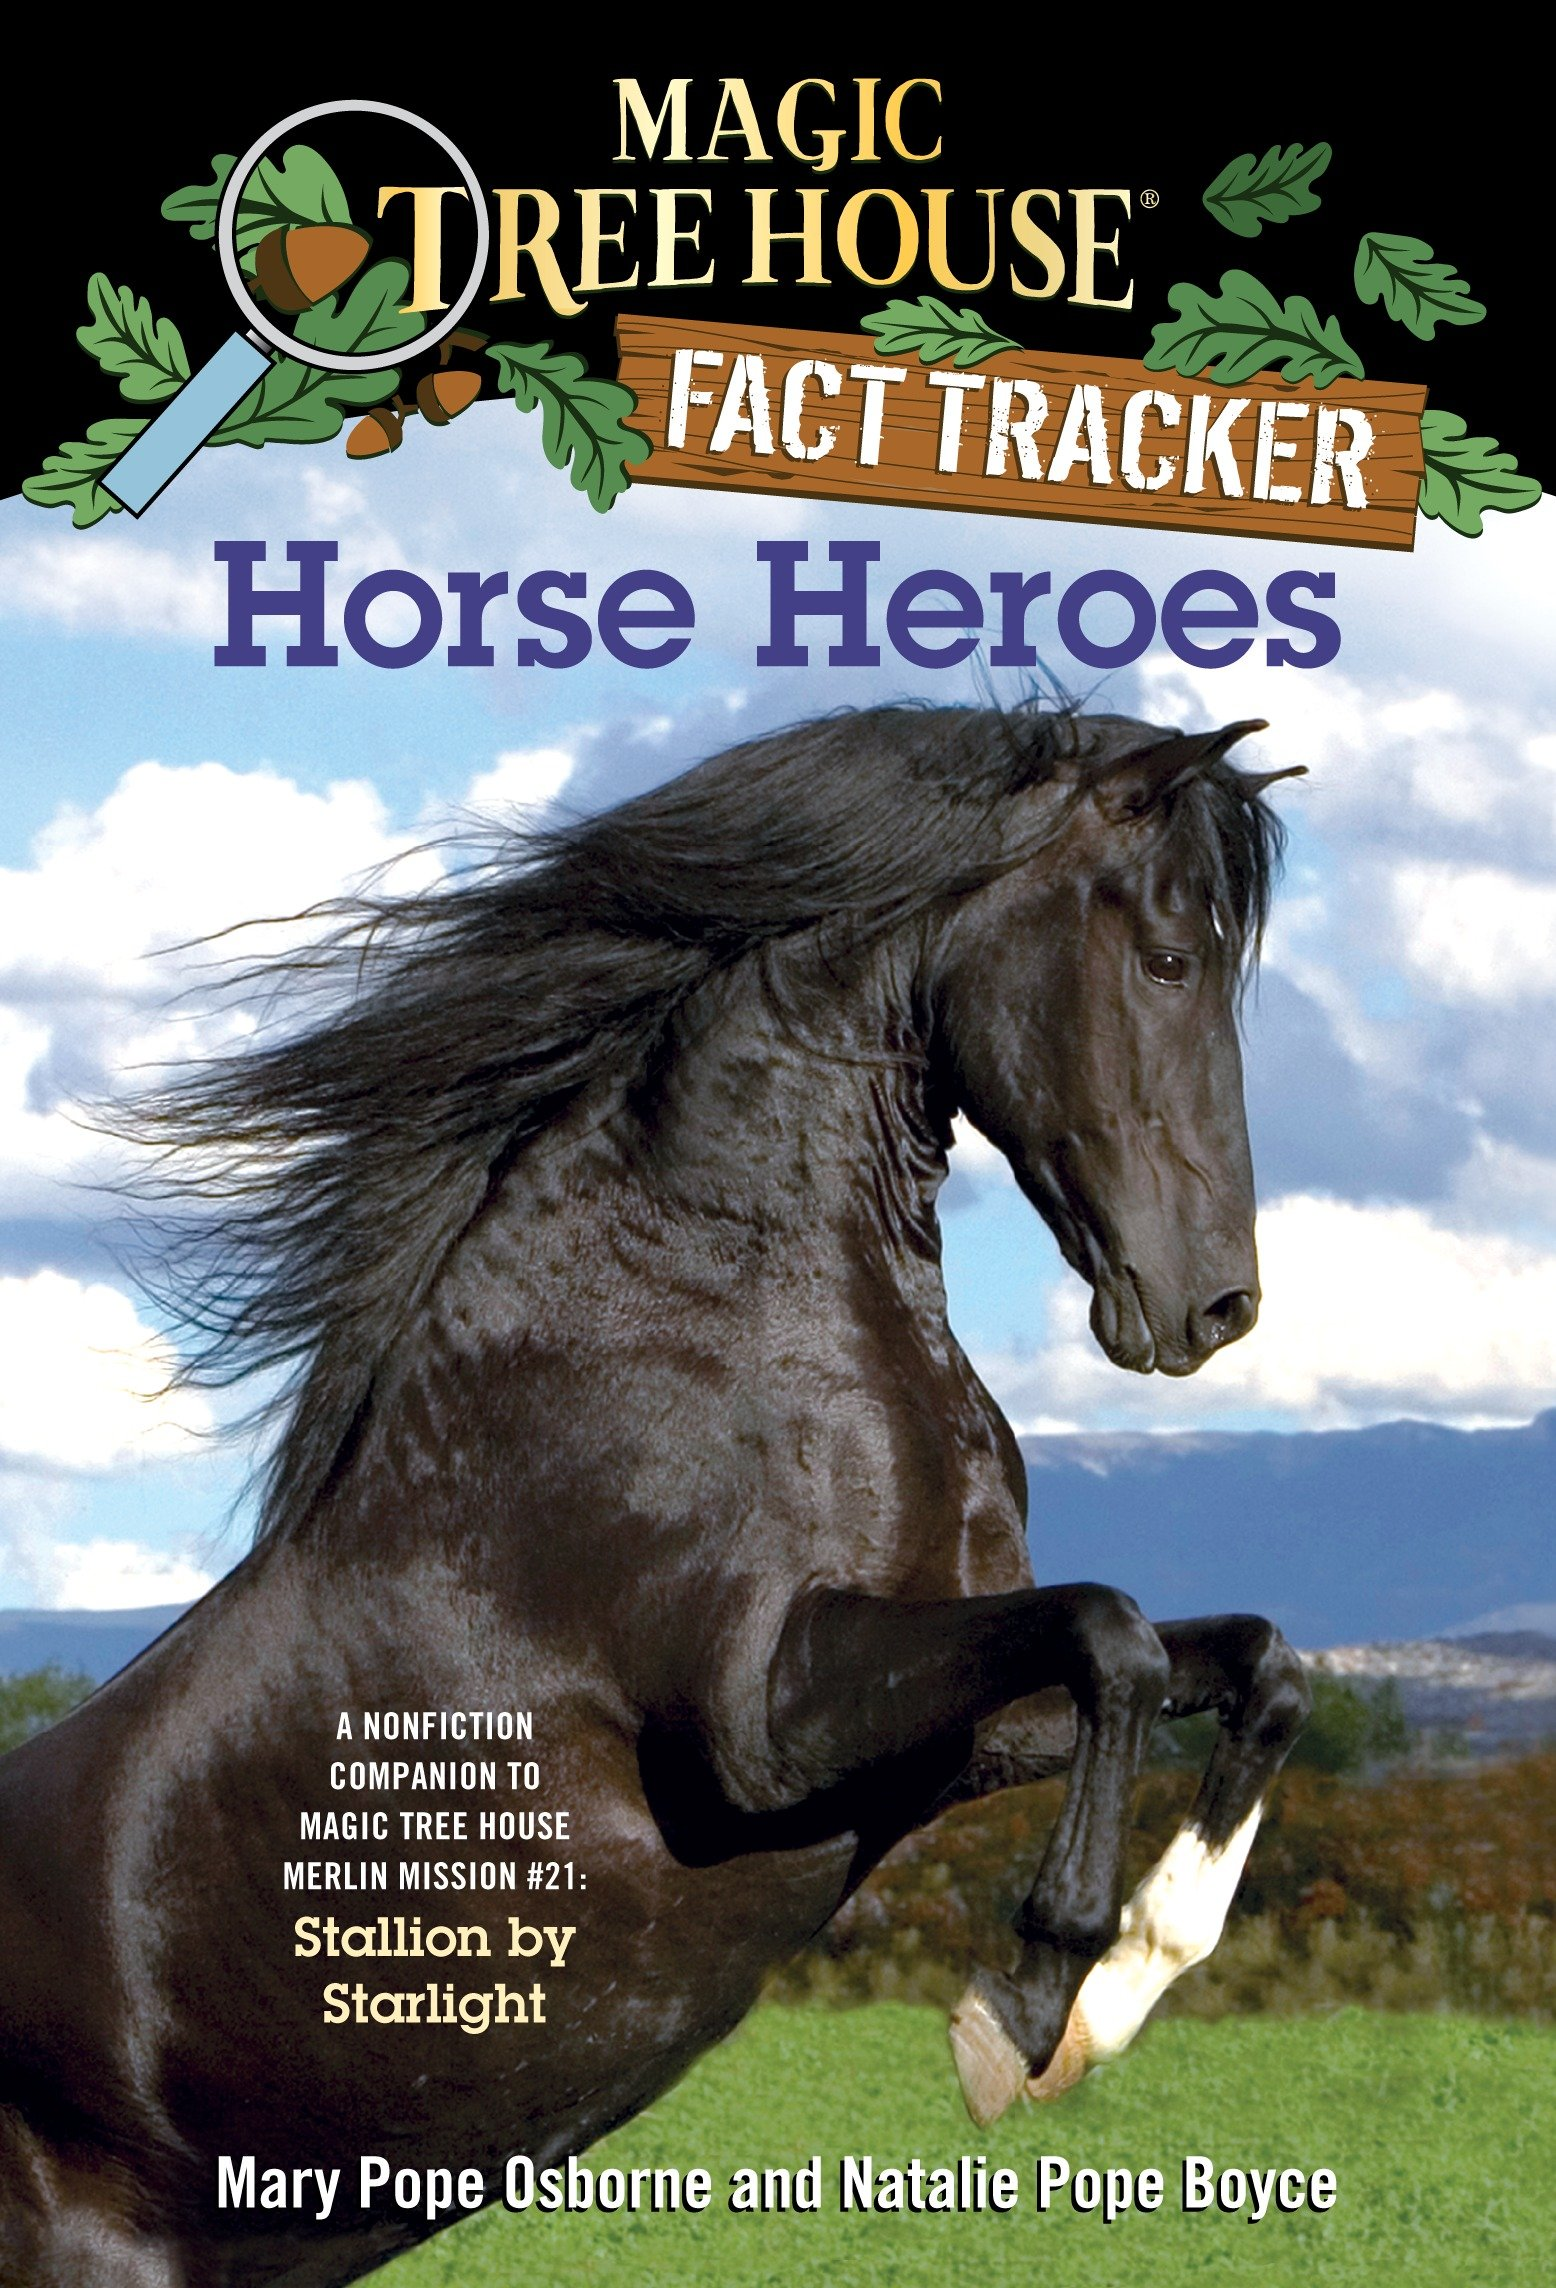 Horse Heroes: A Nonfiction Companion to Magic Tree House Merlin Mission #21: Stallion by Starlight (Magic Tree House (R) Fact Tracker Book 27) por Mary Pope Osborne